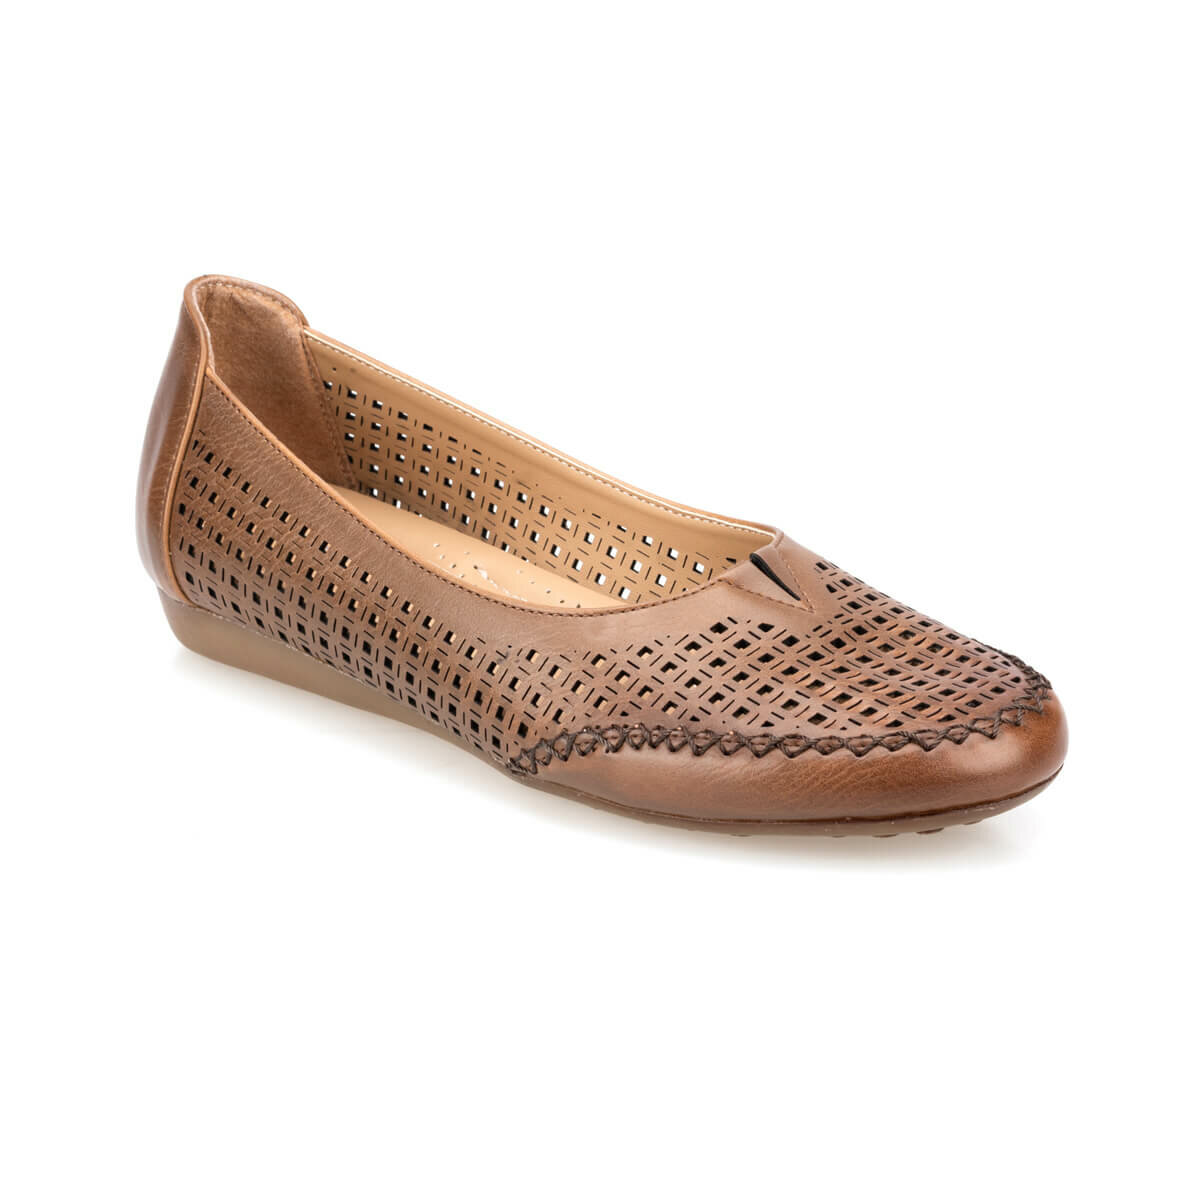 FLO 91.150656.Z Tan Women 'S Shoes Polaris